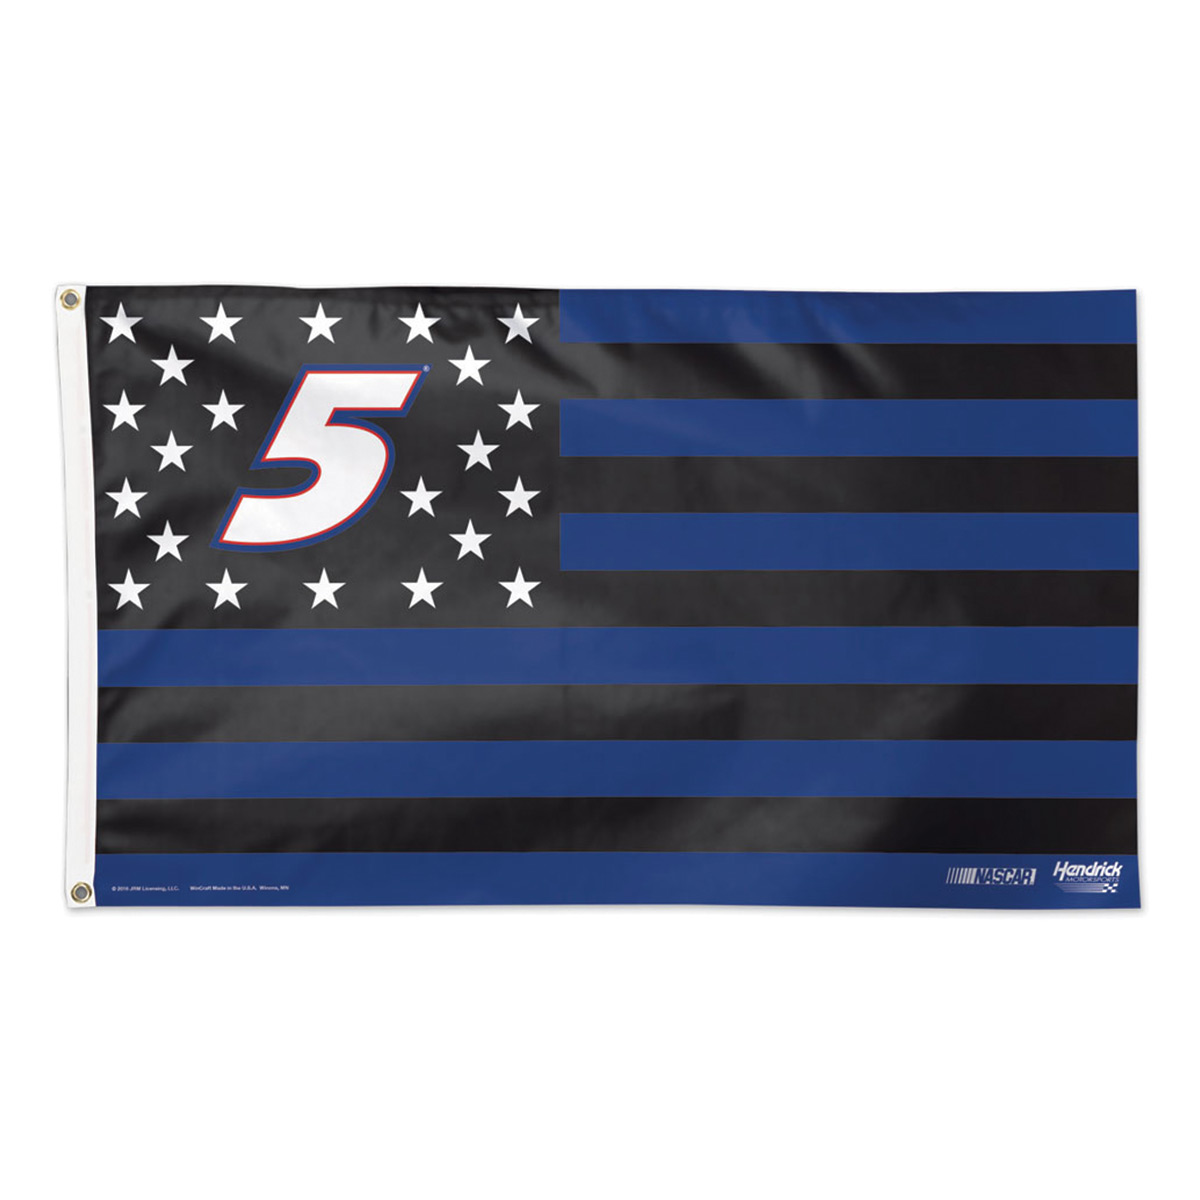 Kasey Kahne #5 Stars and Stripes 3' X 5' Deluxe Flag